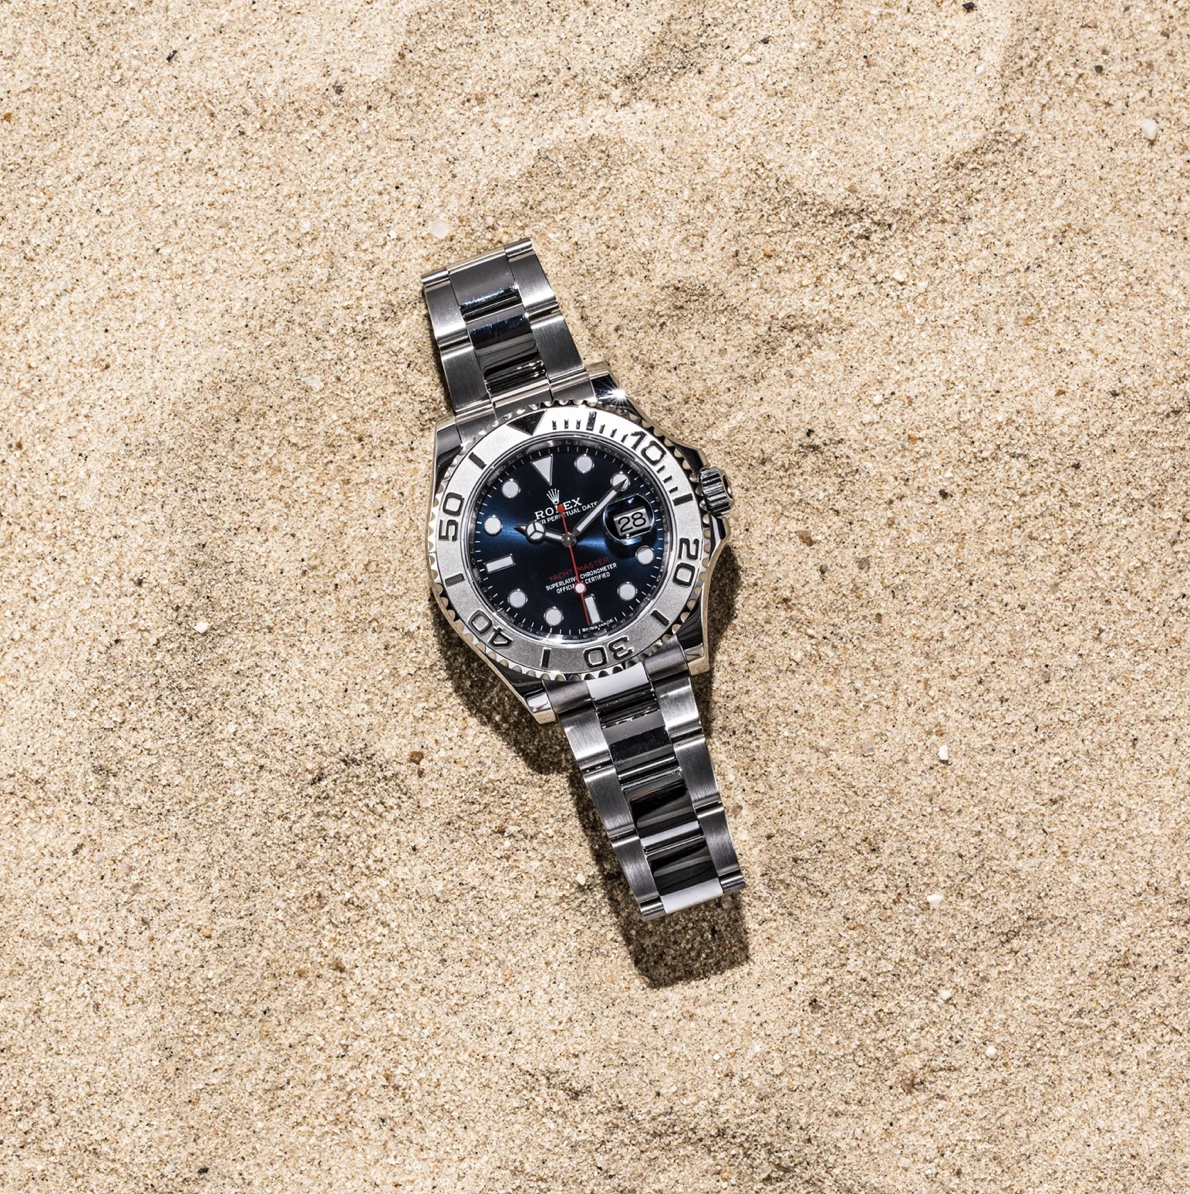 rolex yachtmaster in the sand